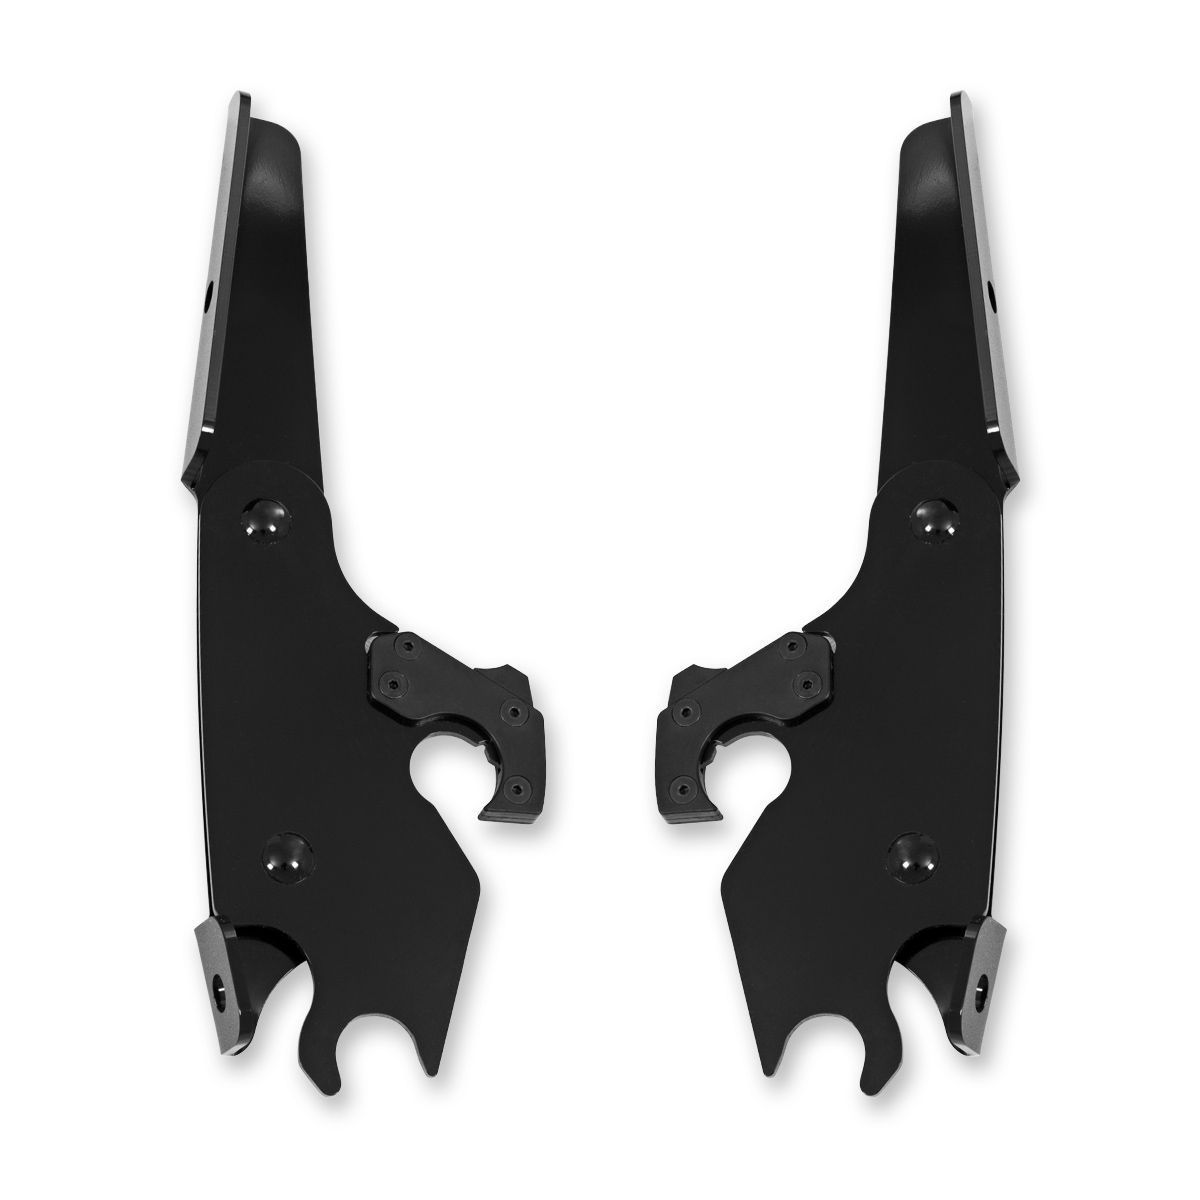 Memphis Shades Batwing Fairing Black Mounting Plates Only